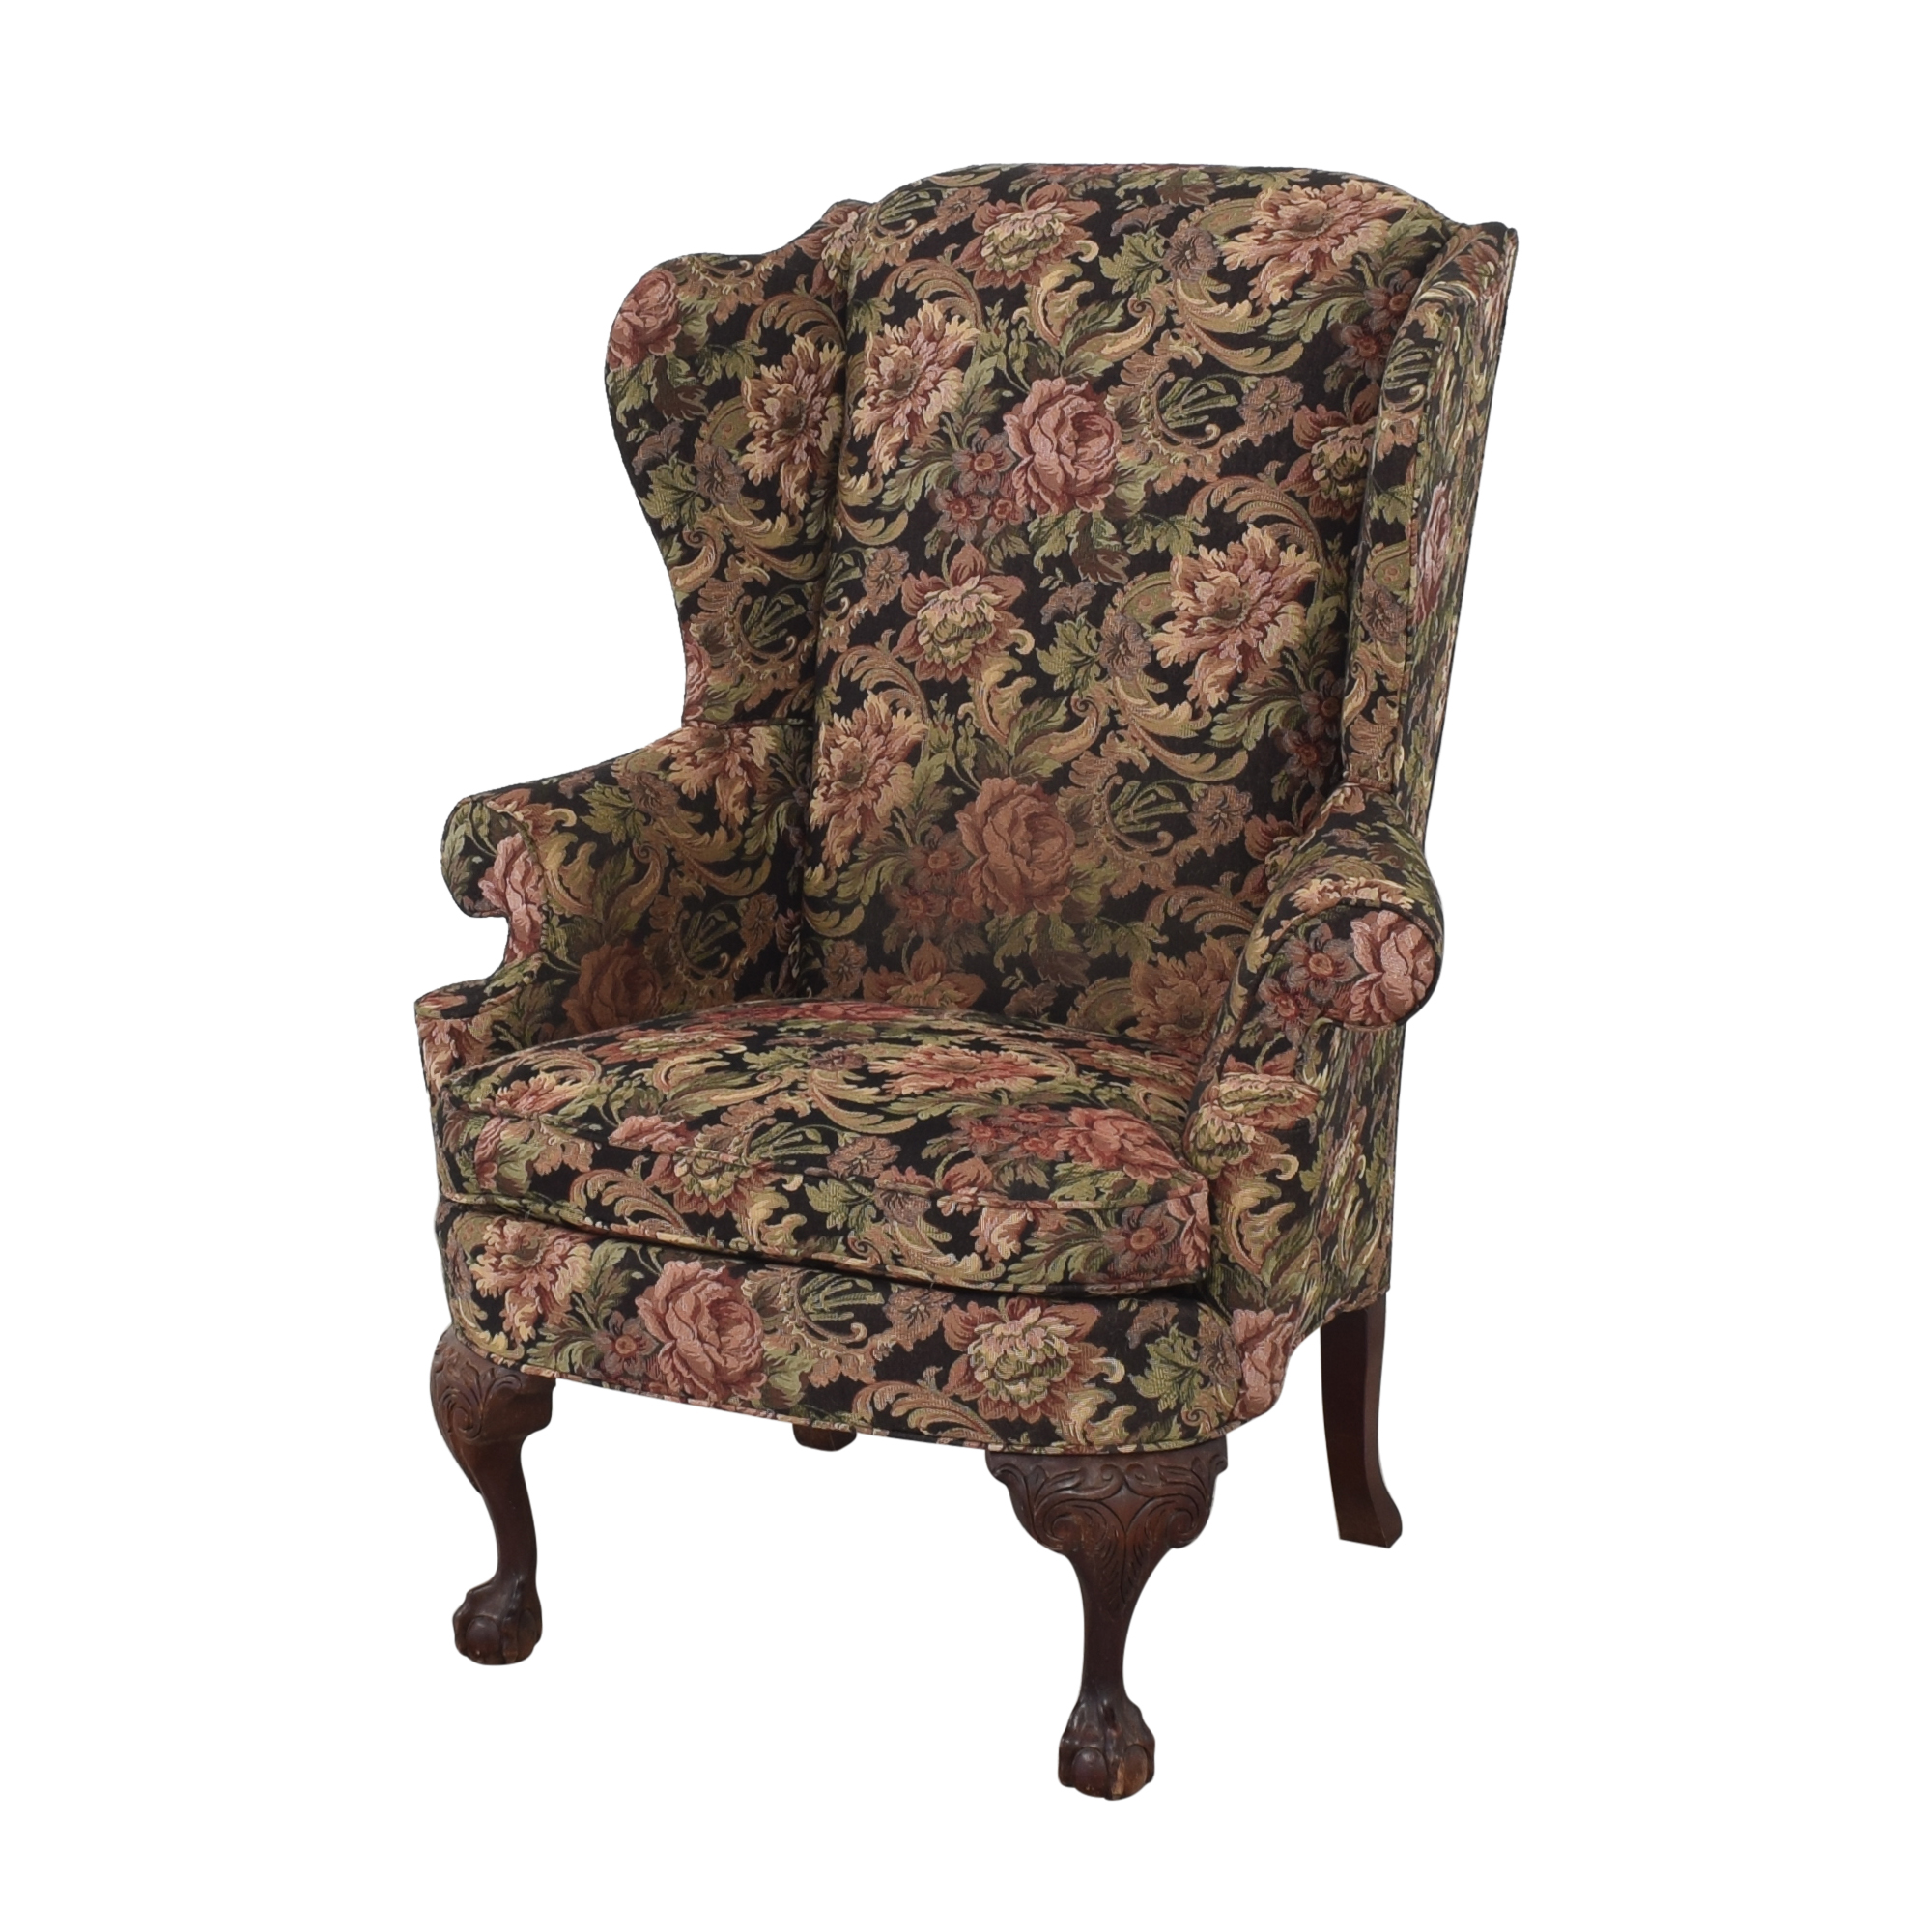 Thomasville Thomasville Queen Anne Wing Back Chair Accent Chairs